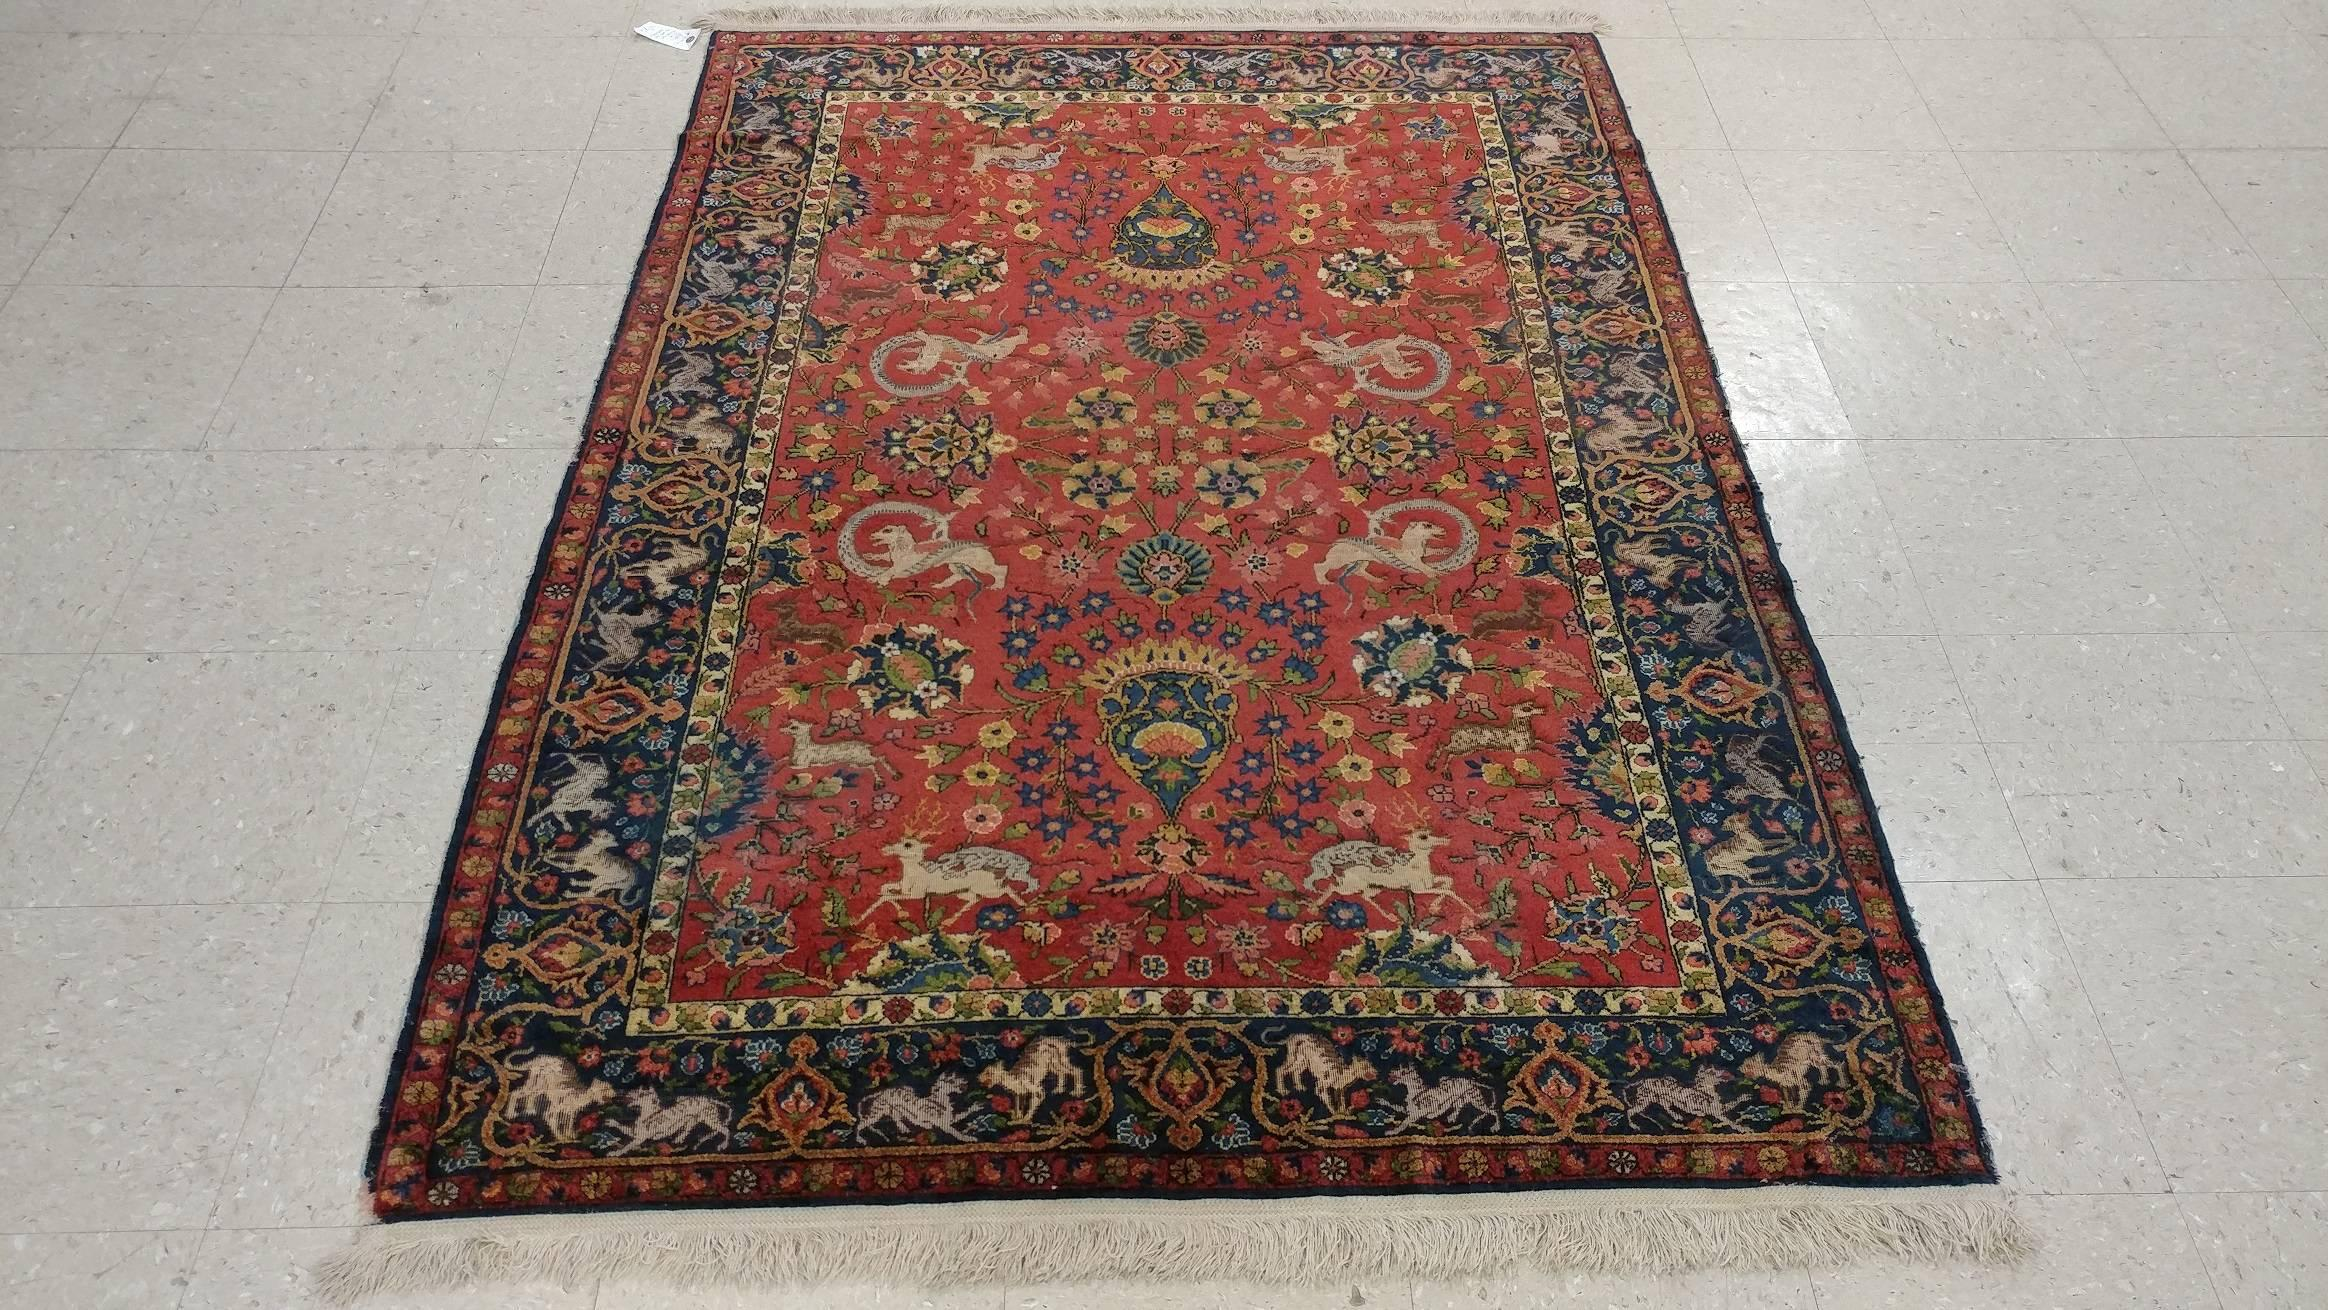 Antique Silk Turkish Rug, Handmade Oriental Rug, Red and Blue, Fine Silk Rugs For Sale at 1stdibs